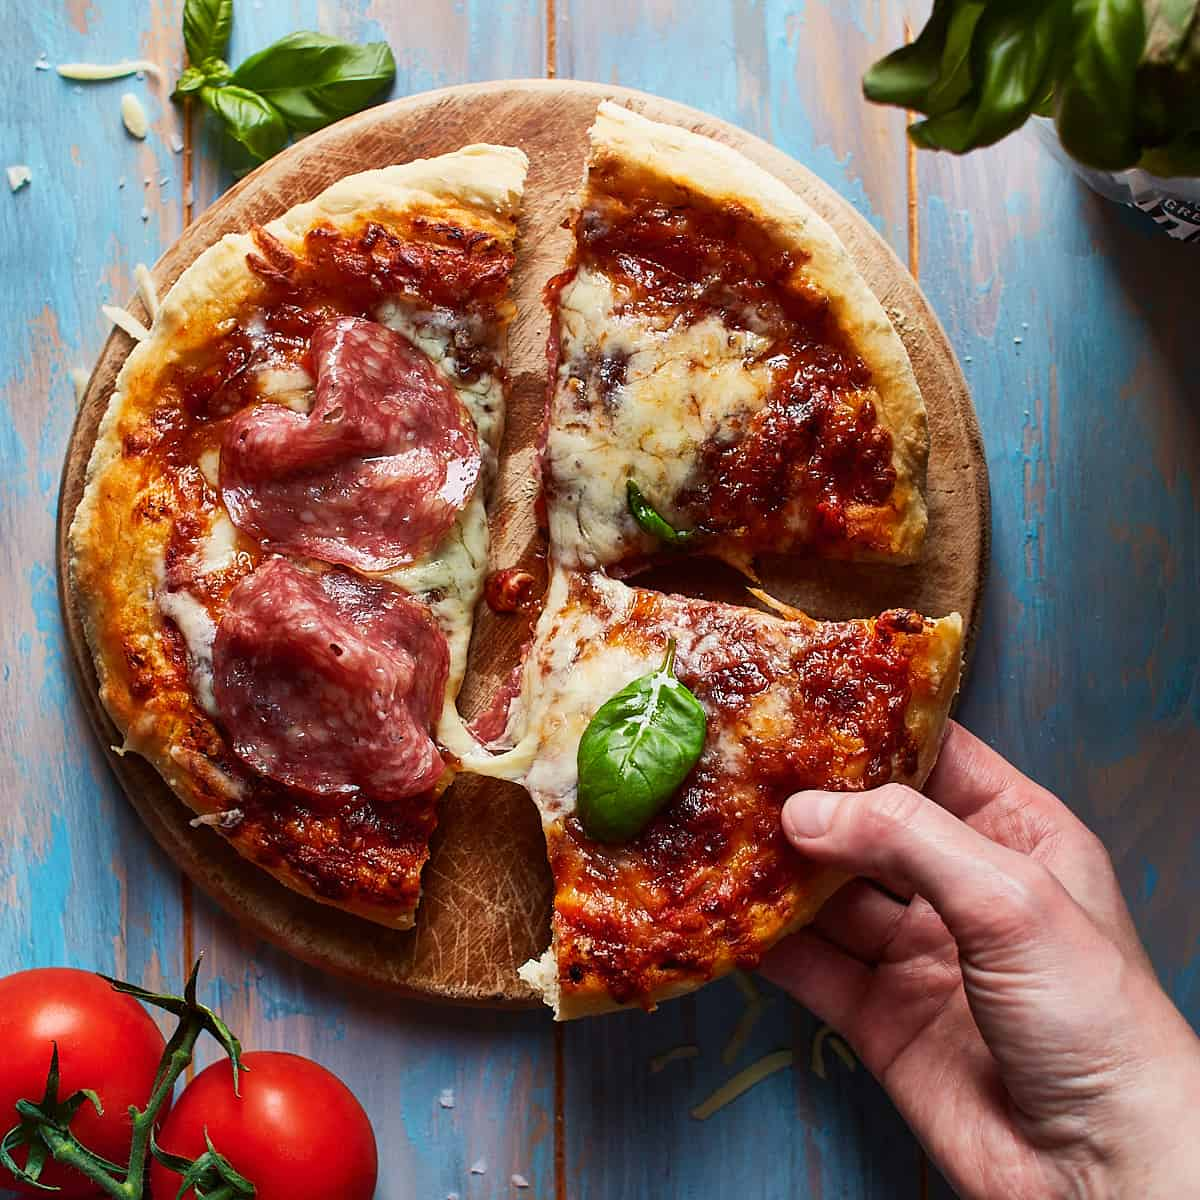 Lifting up a slice of pizza from a cutting board